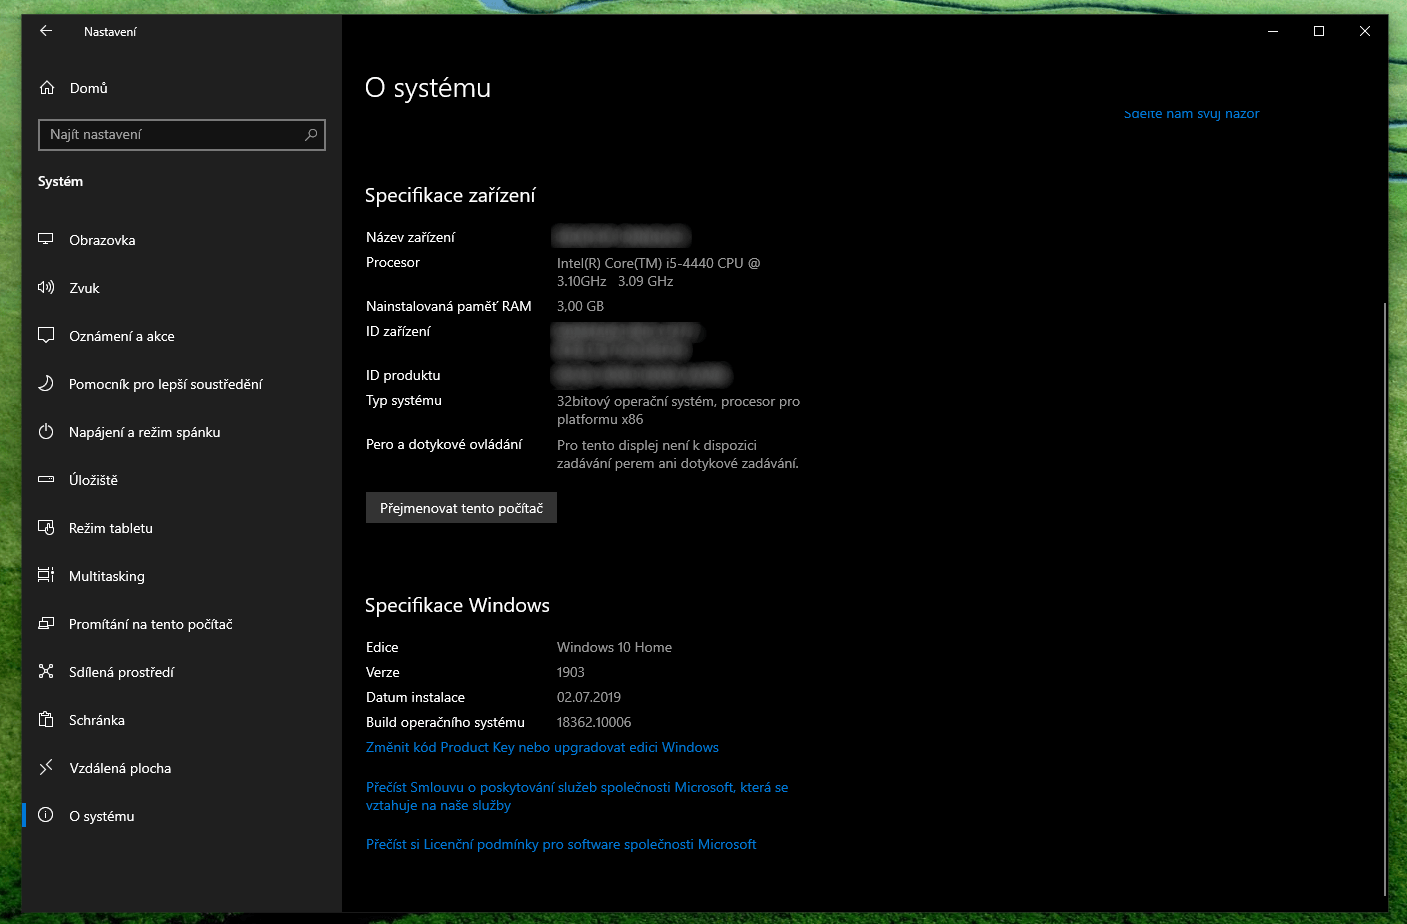 Windows 10 Insider Preview Build 18362 10006 2